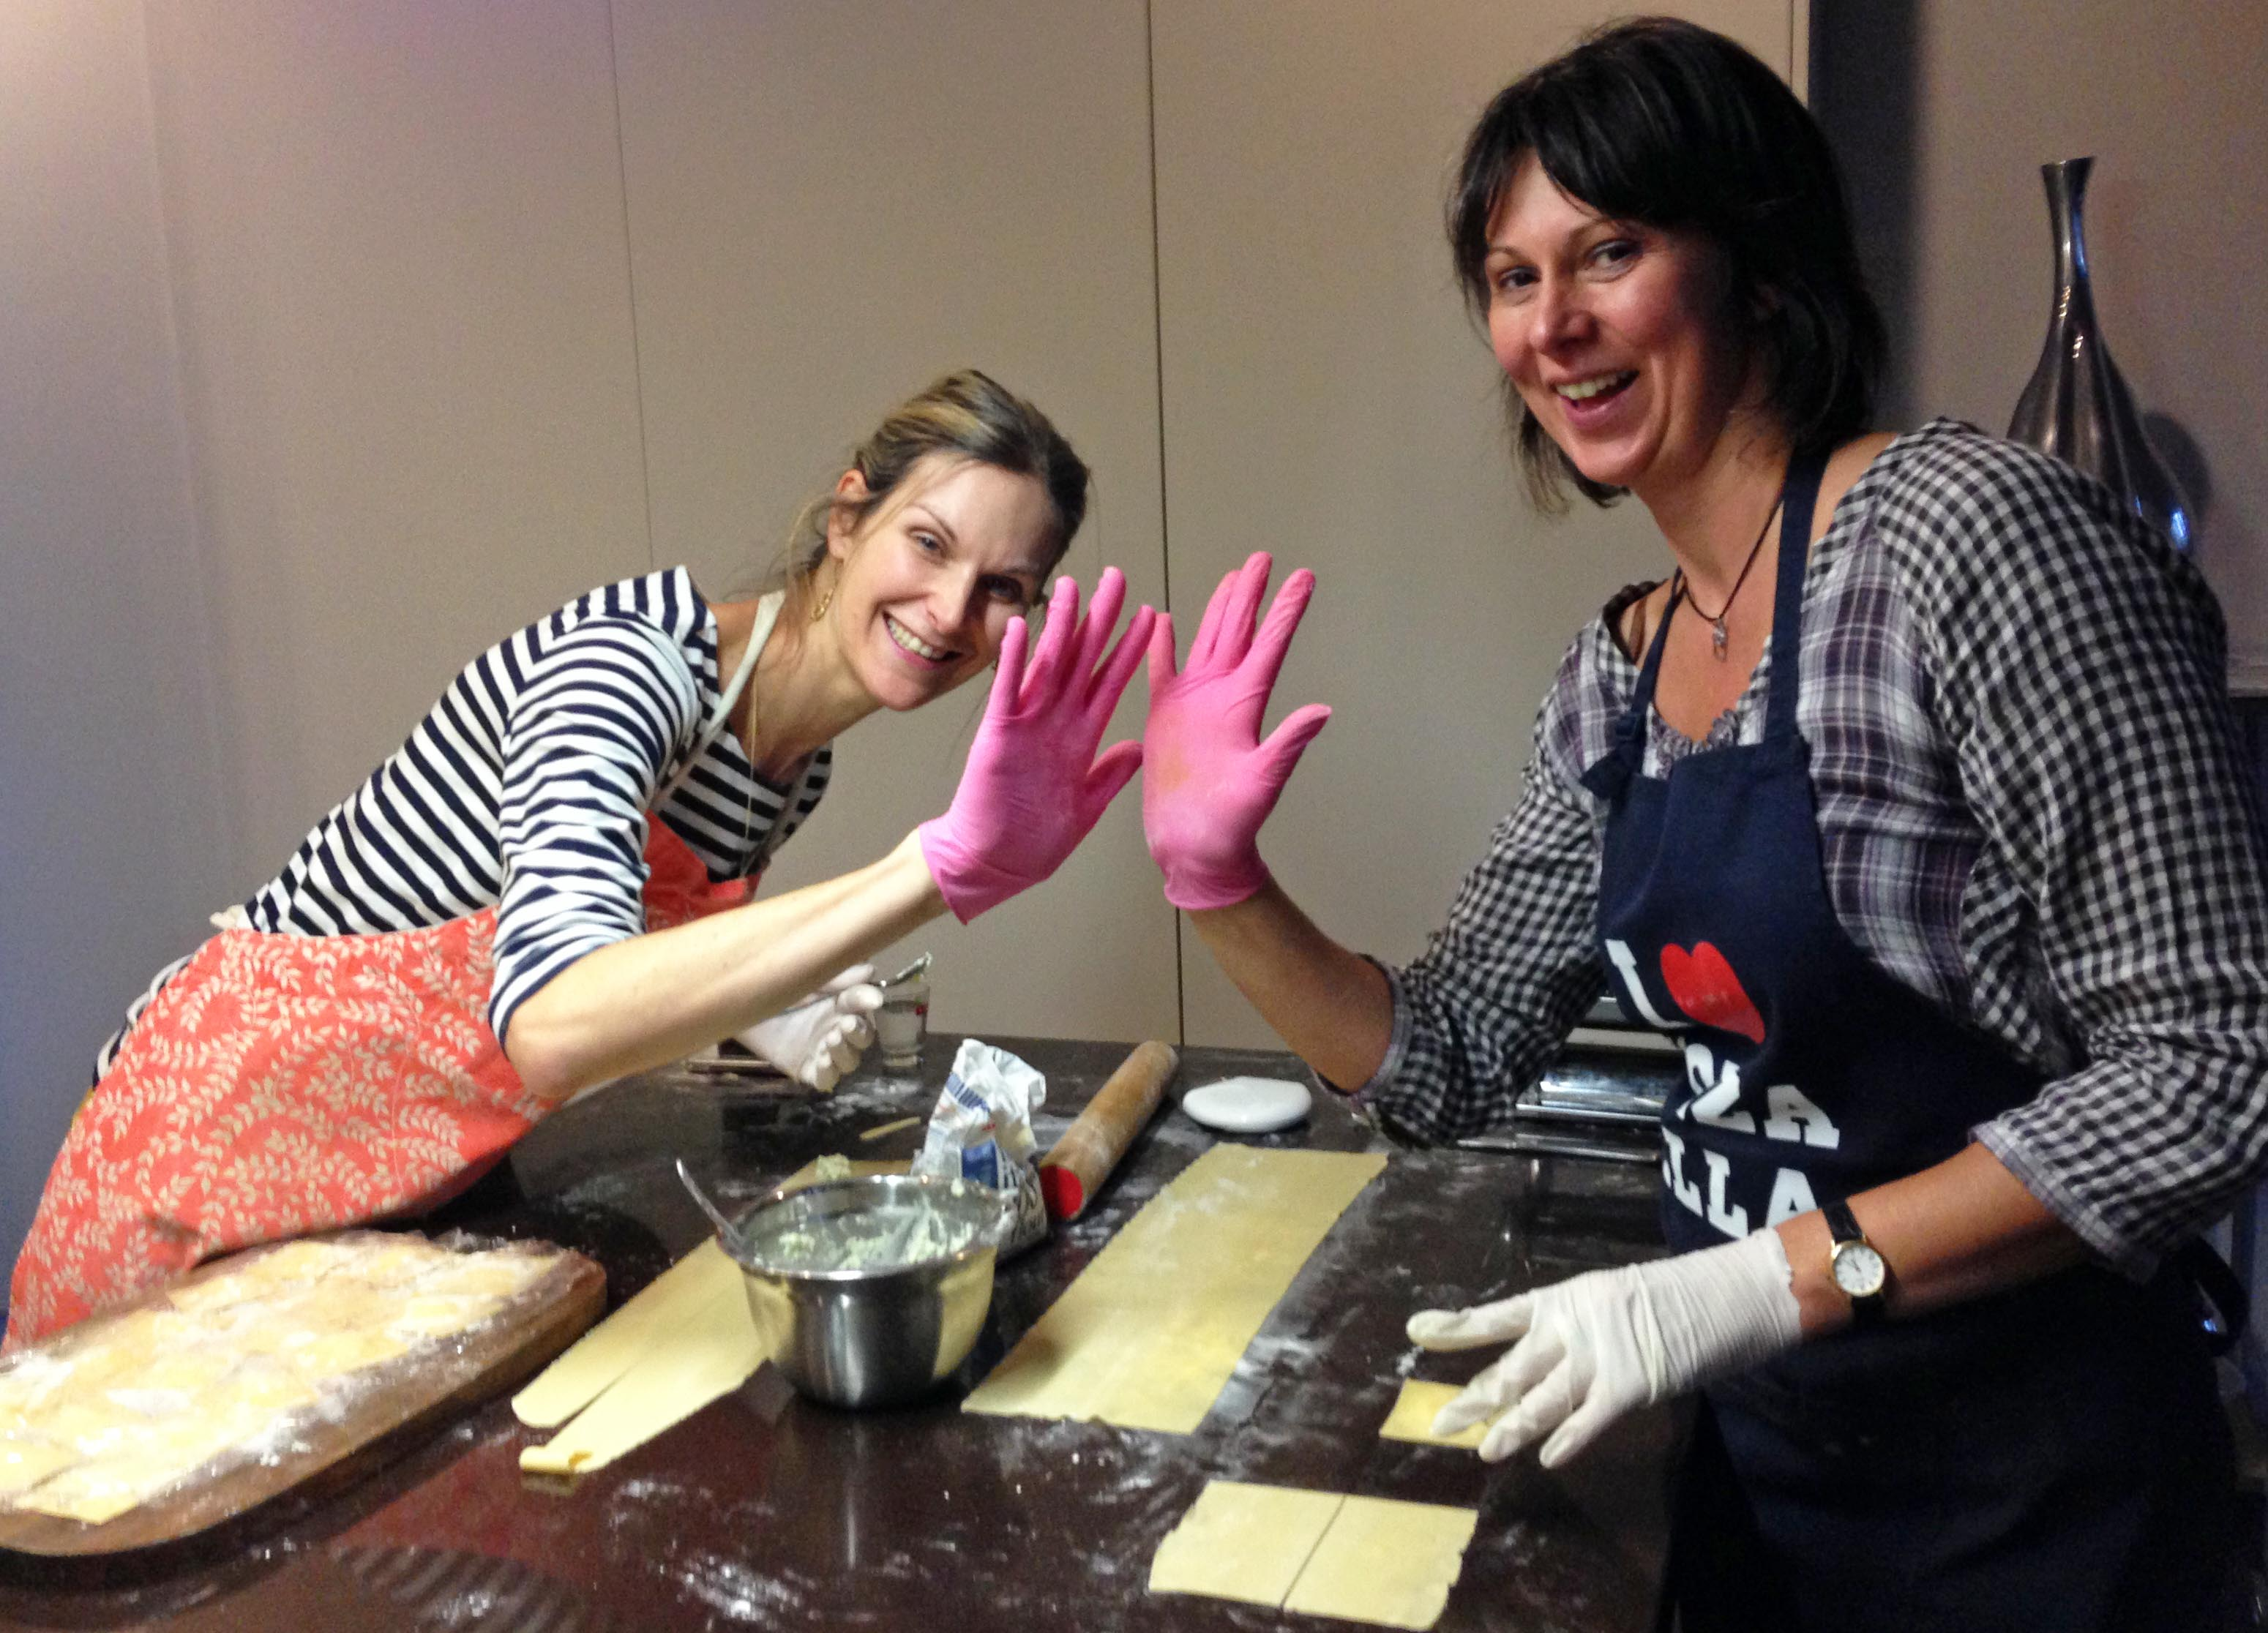 making ravioli wearing pink gloves